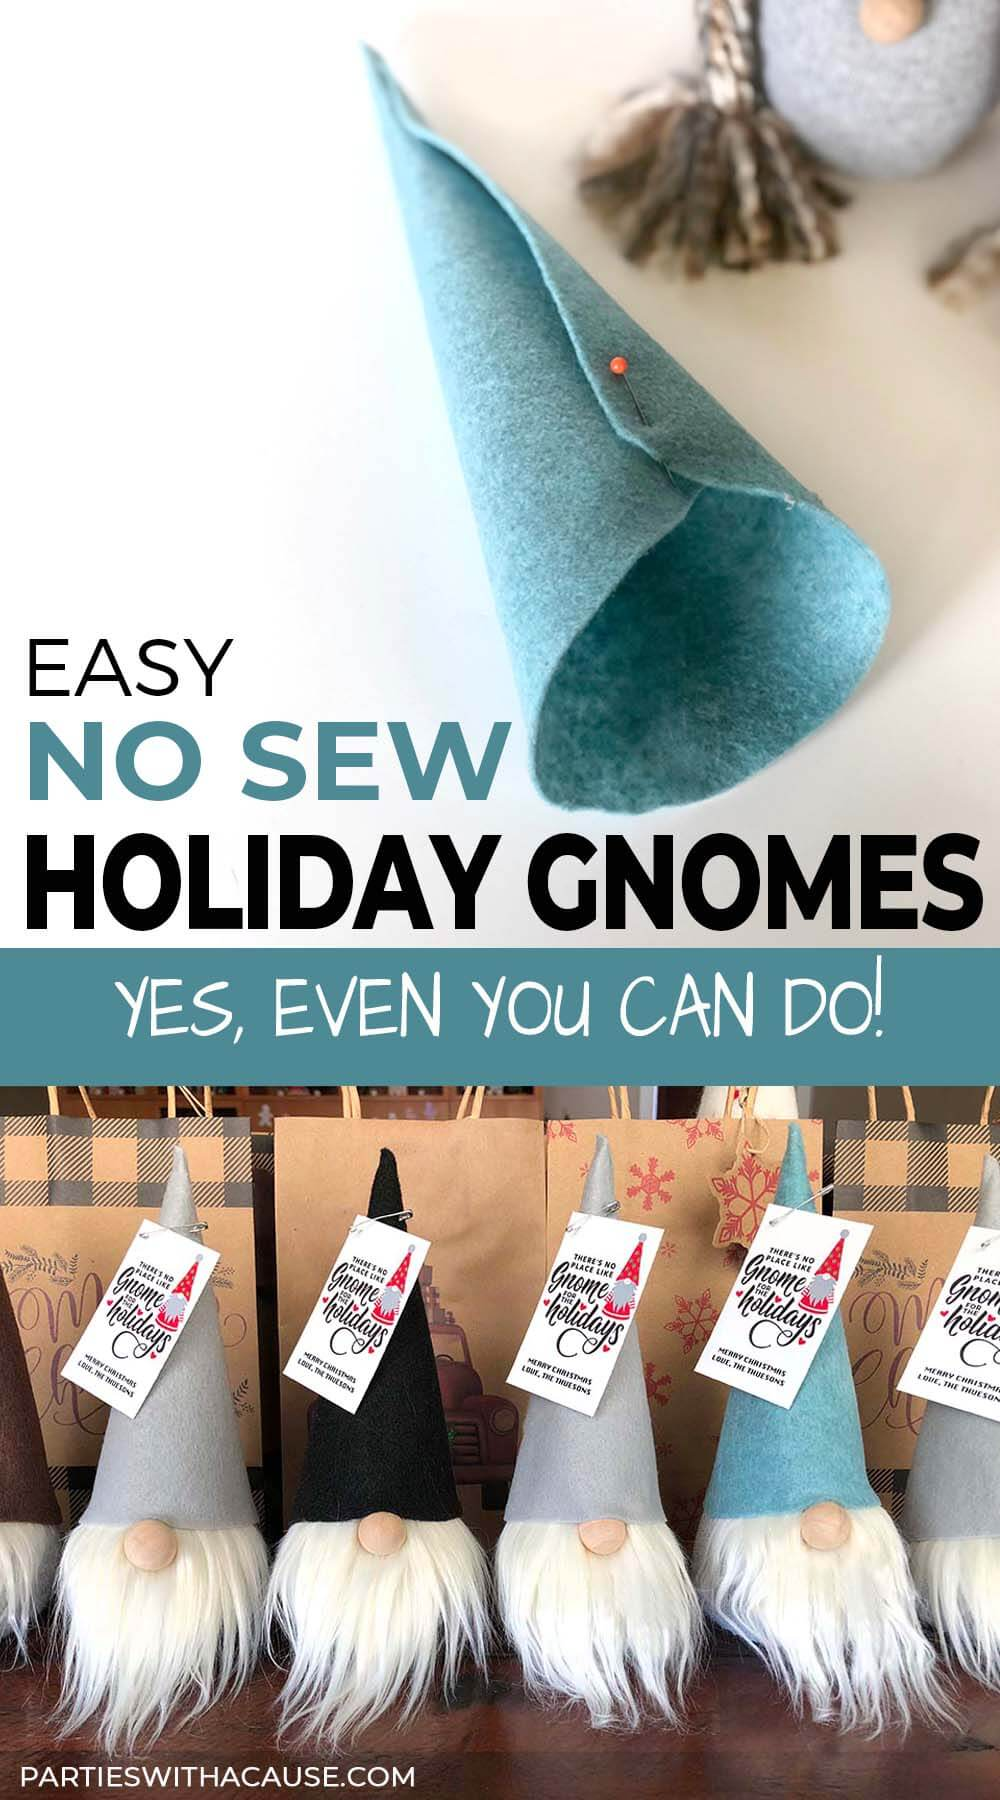 Easy No Sew Holiday Gnomes that, yes, even you can do